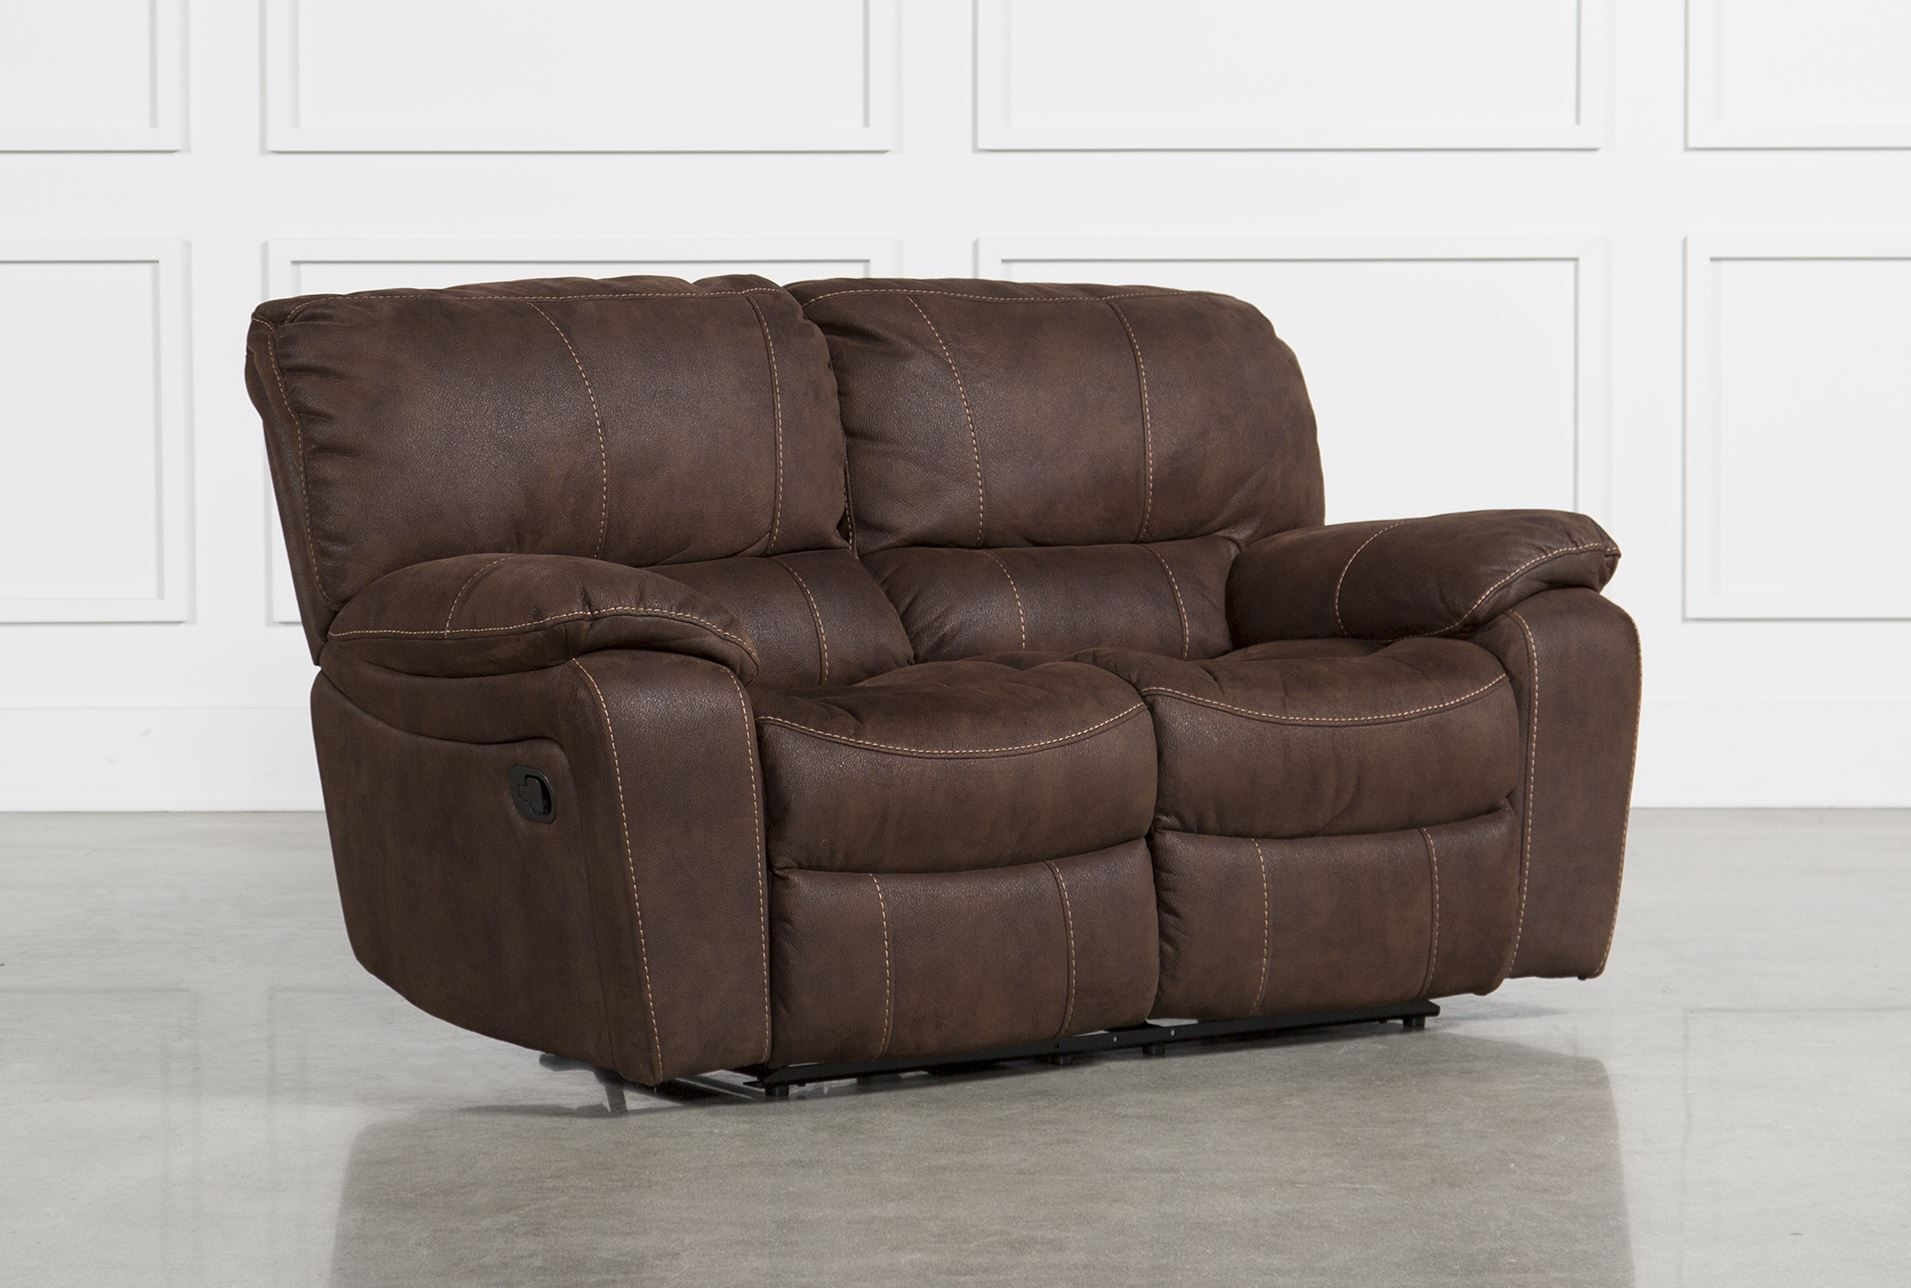 Langdon Reclining Loveseat – Signature | Sofas/loveseat | Pinterest Pertaining To Tenny Cognac 2 Piece Right Facing Chaise Sectionals With 2 Headrest (Image 11 of 25)